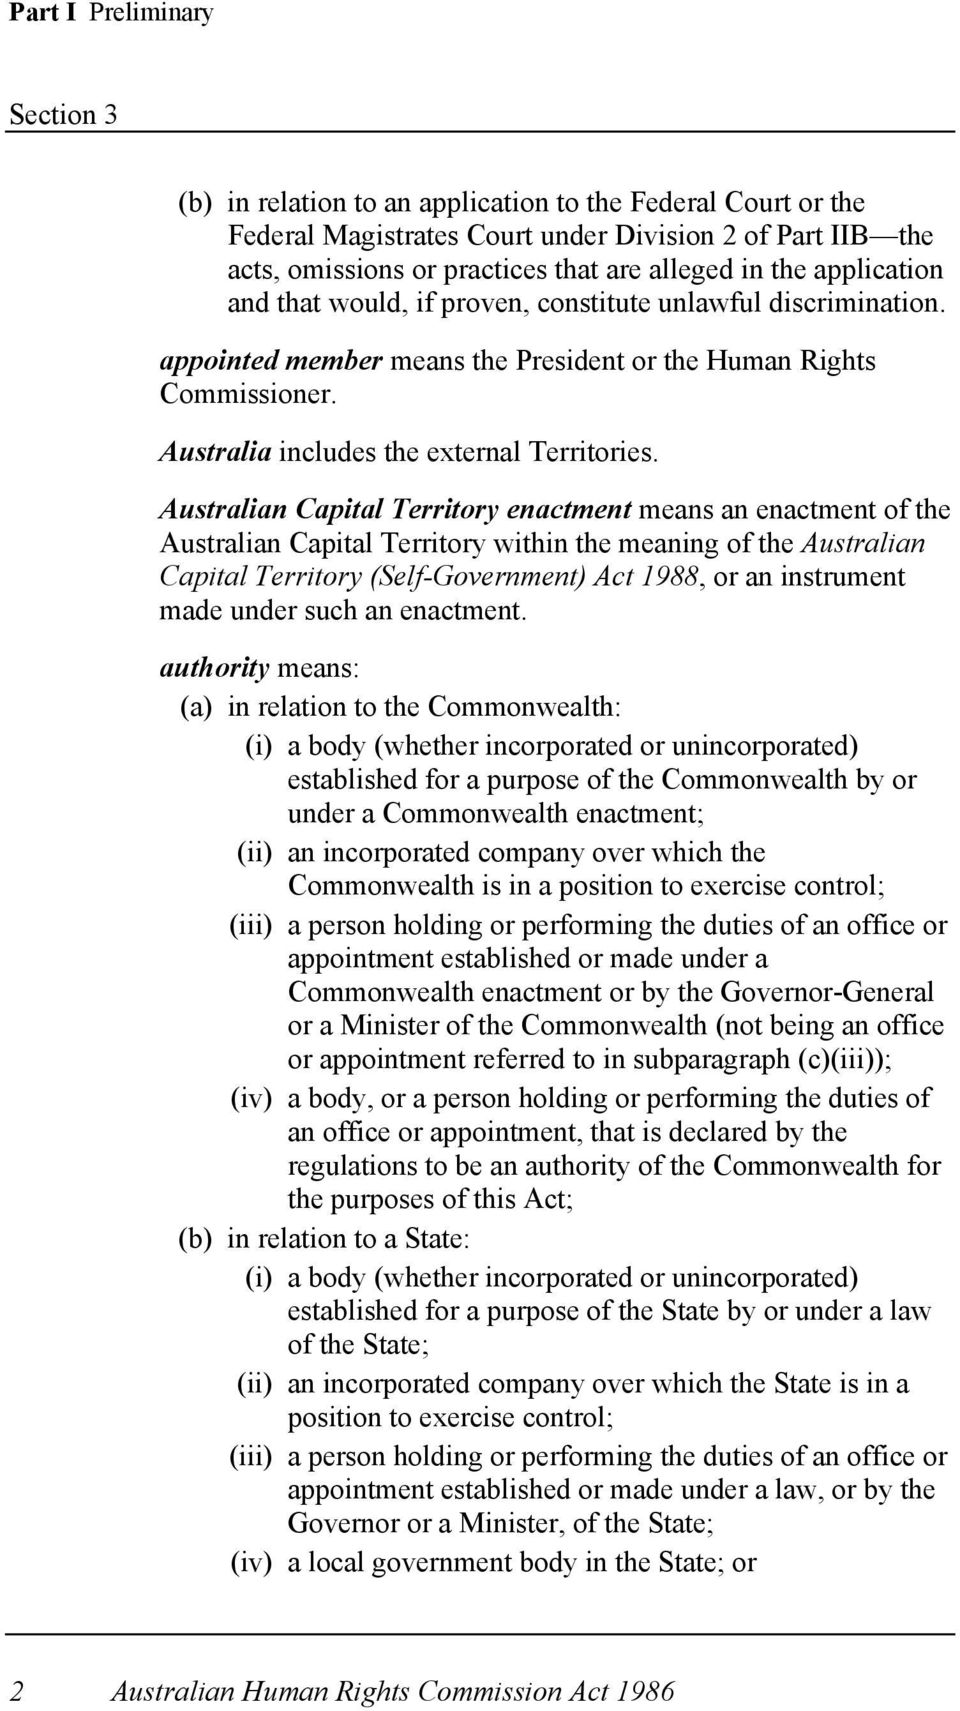 Australian Capital Territory enactment means an enactment of the Australian Capital Territory within the meaning of the Australian Capital Territory (Self-Government) Act 1988, or an instrument made